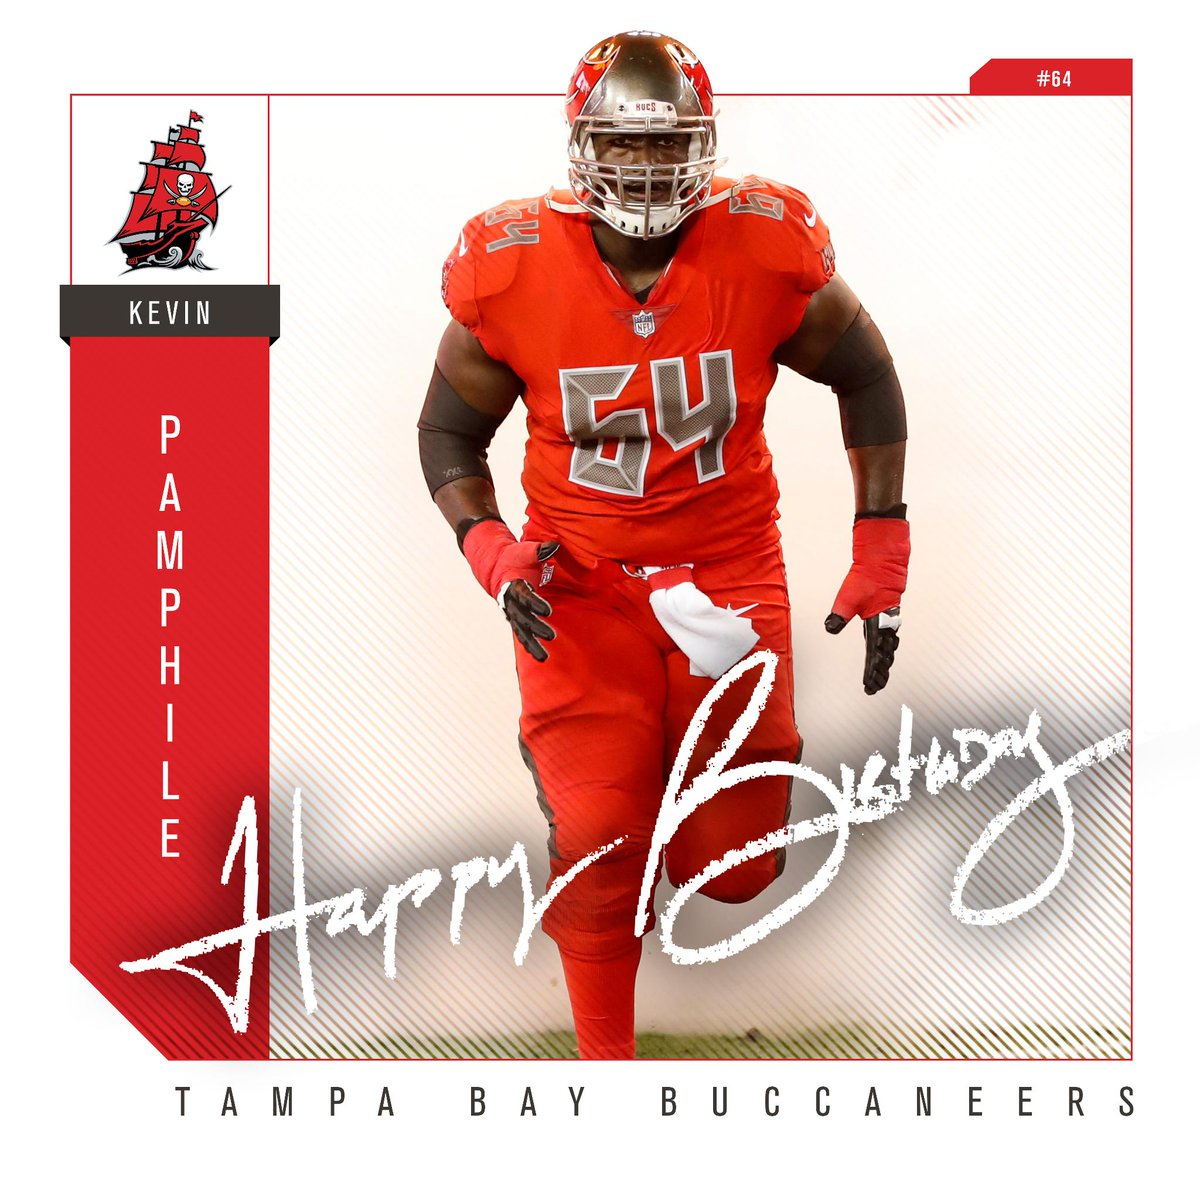 Tampa Bay Buccaneers: #Bucs Fans, Help Us Wish @KevinPamphile64 A Happy Birthday